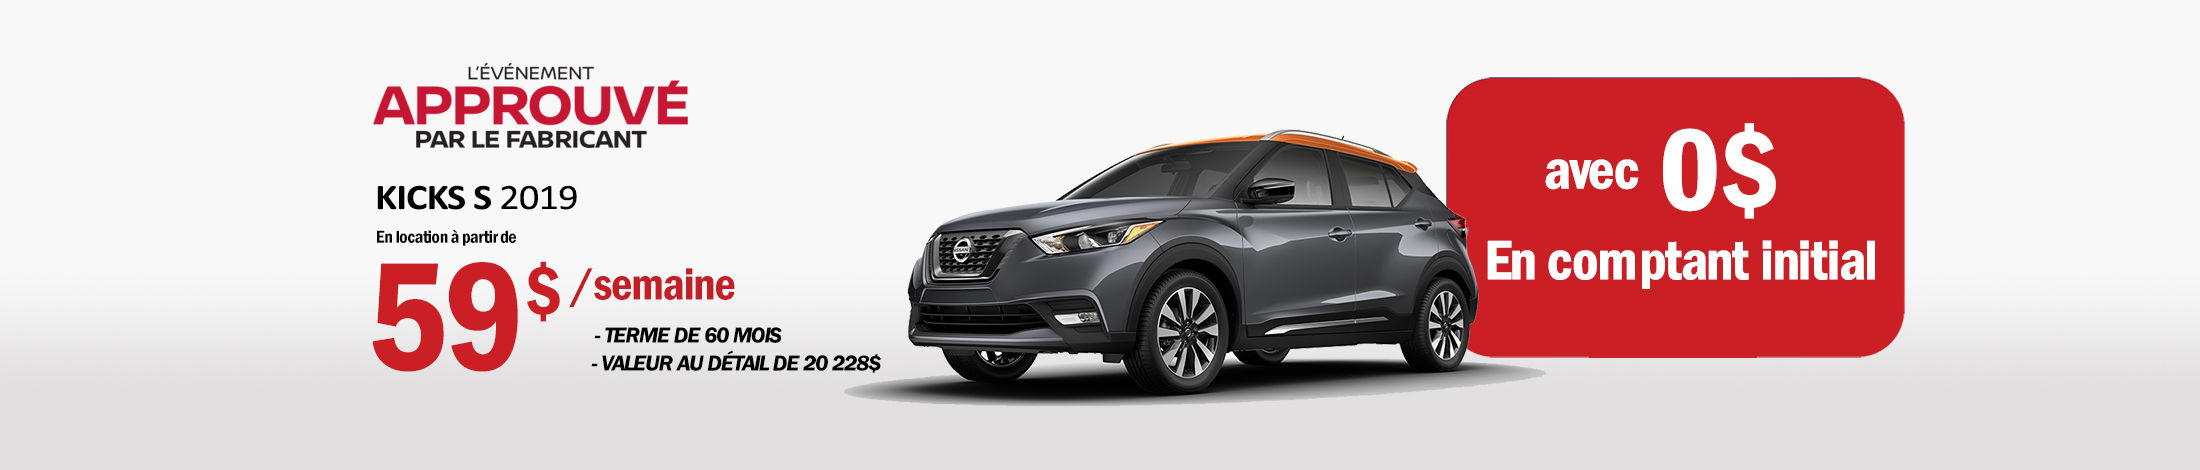 Nissan Kicks promotion banner